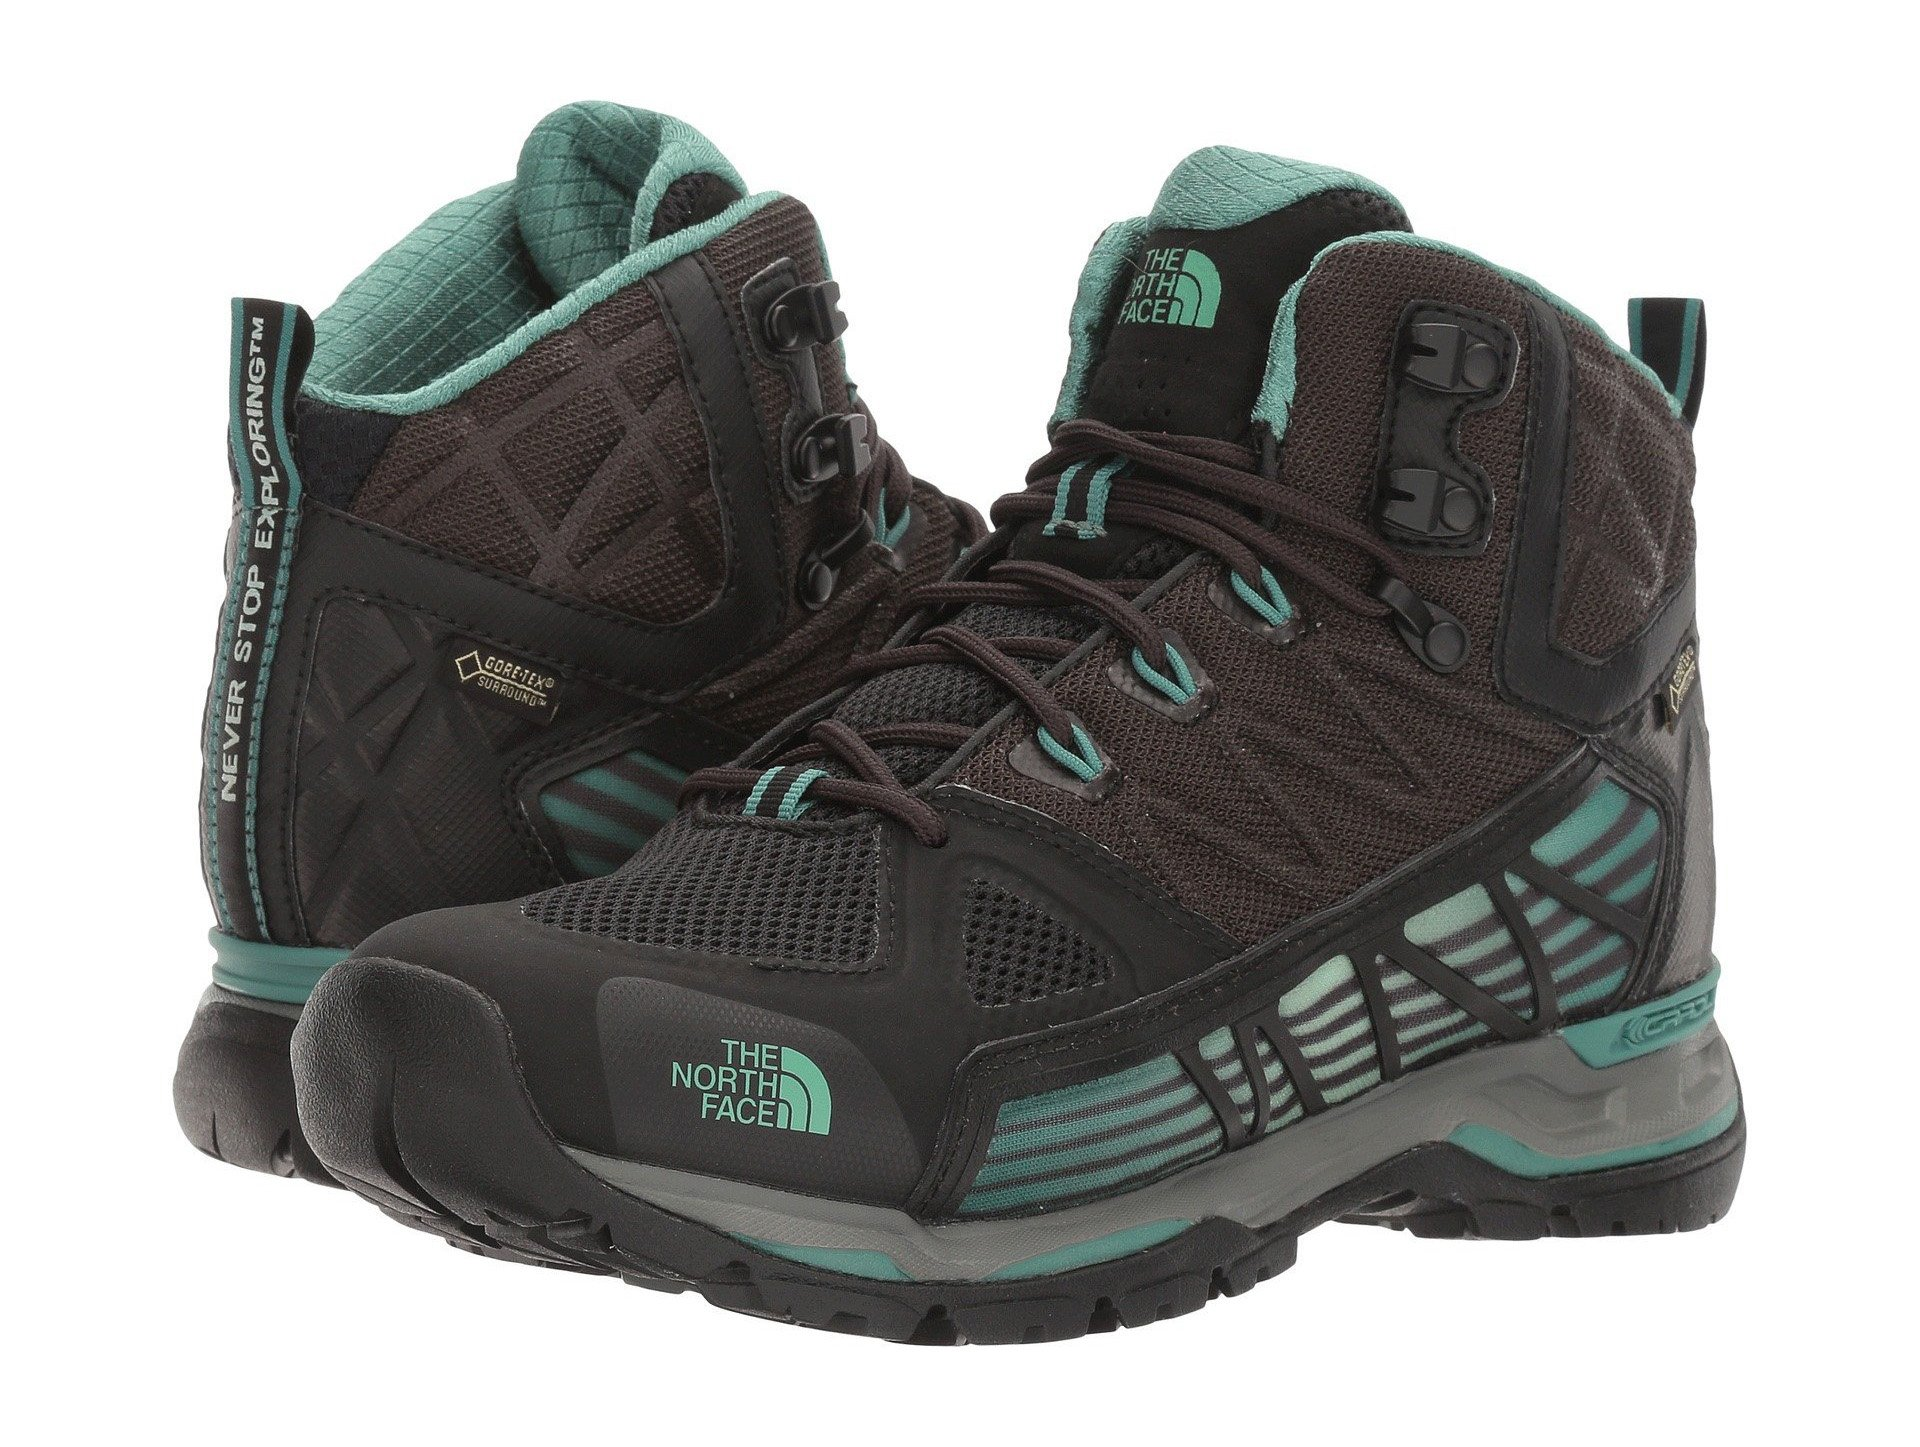 THE NORTH FACE WOMEN'S ULTRA GORE-TEX SURROUND MID (8, TNF Black/Deep Sea)